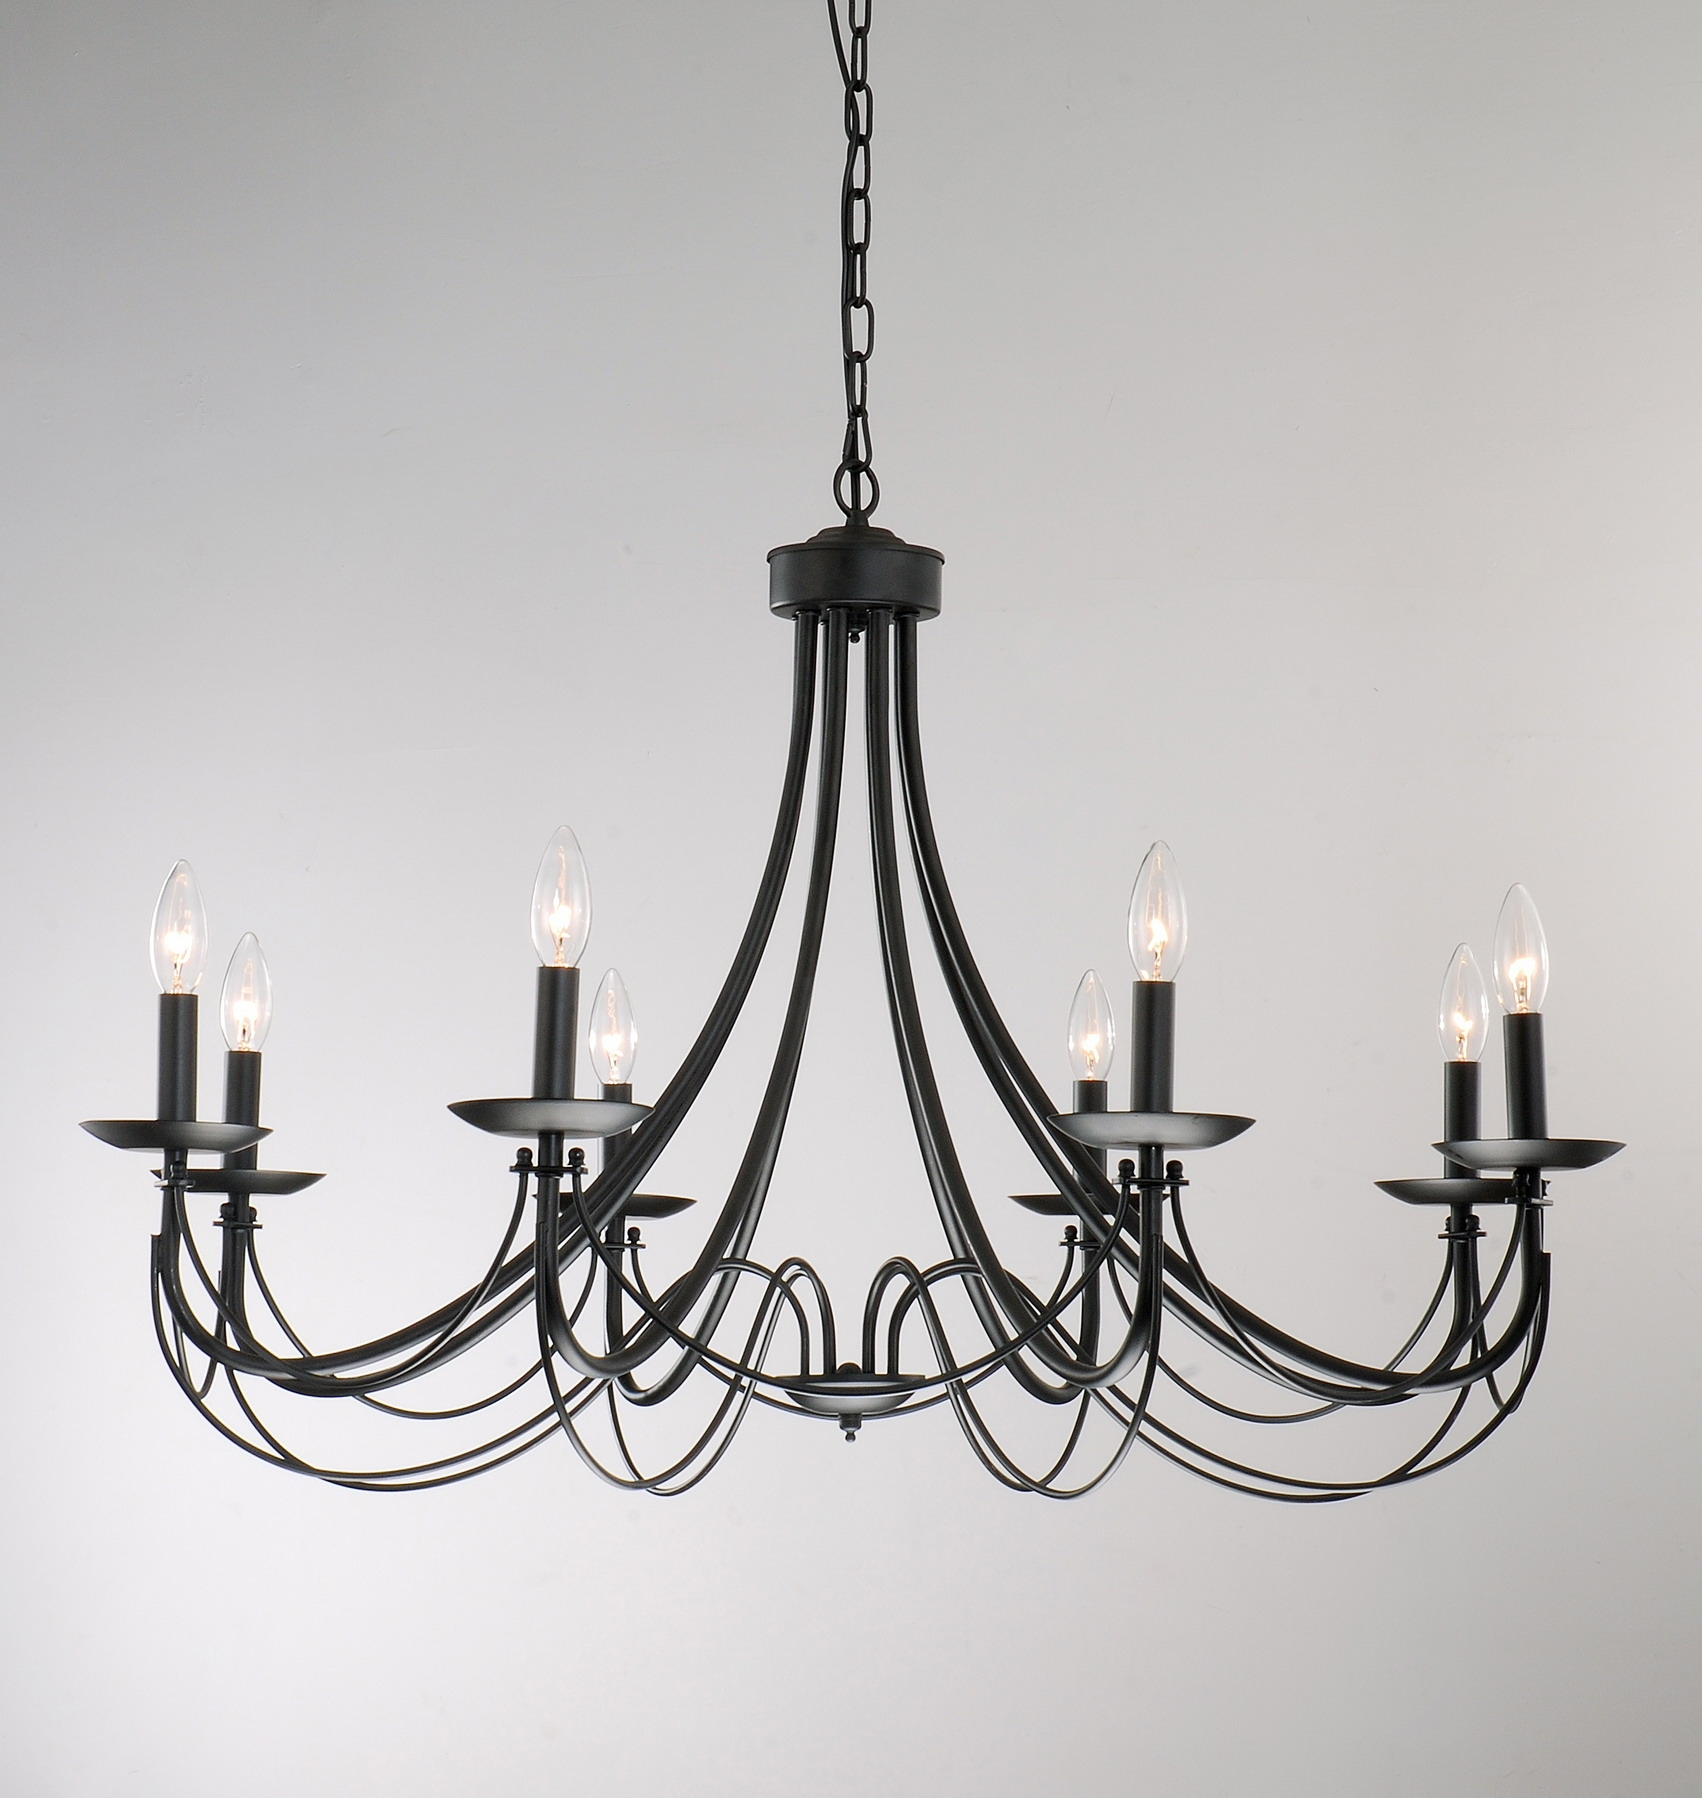 Iron 8 Light Black Chandelier Black Chandelier Chandeliers And Iron With Regard To Large Black Chandelier (#9 of 12)